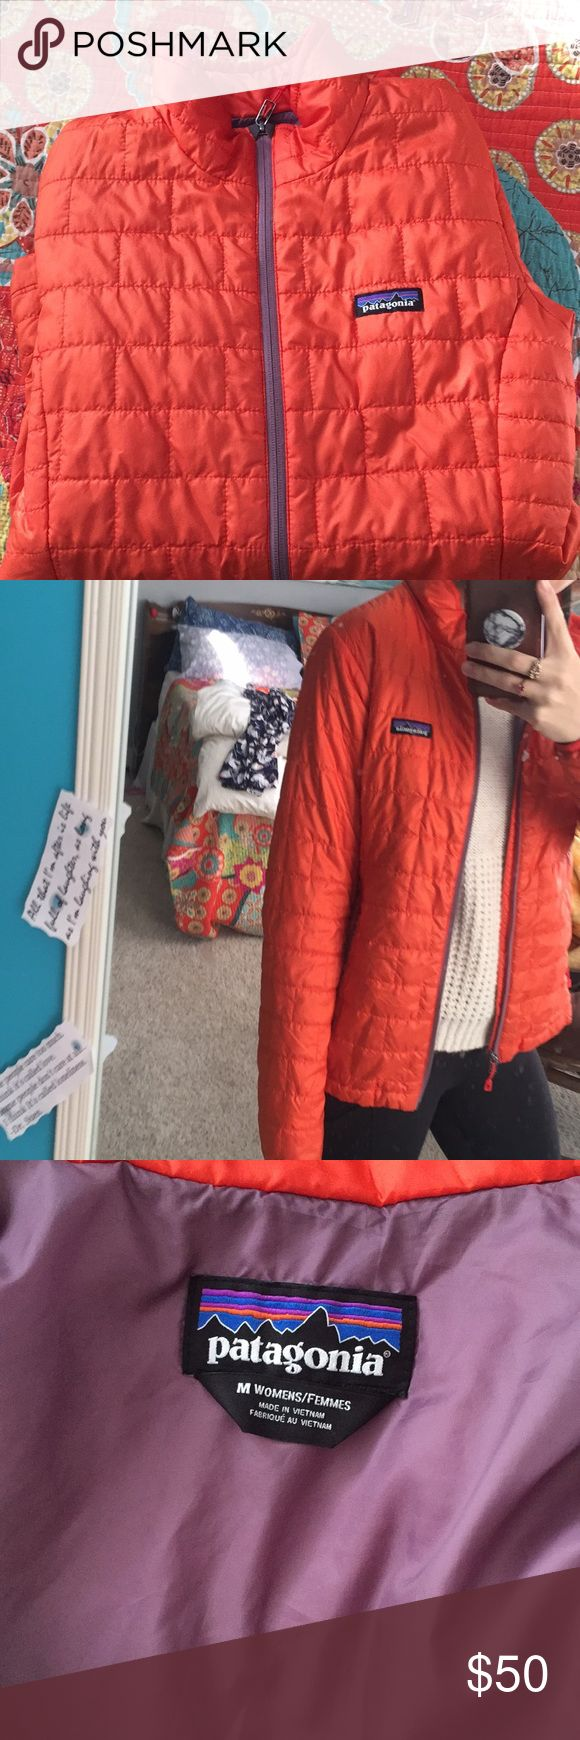 Patagonia puffer Women's M Orange (older color) Women's puffer from Patagonia. Has been worn but is in great condition minus one snag along the zipper seam however it is fixable. Overall no other wear and tear. I typically wear a small but this fits great for extra room underneath! Patagonia Jackets & Coats Puffers